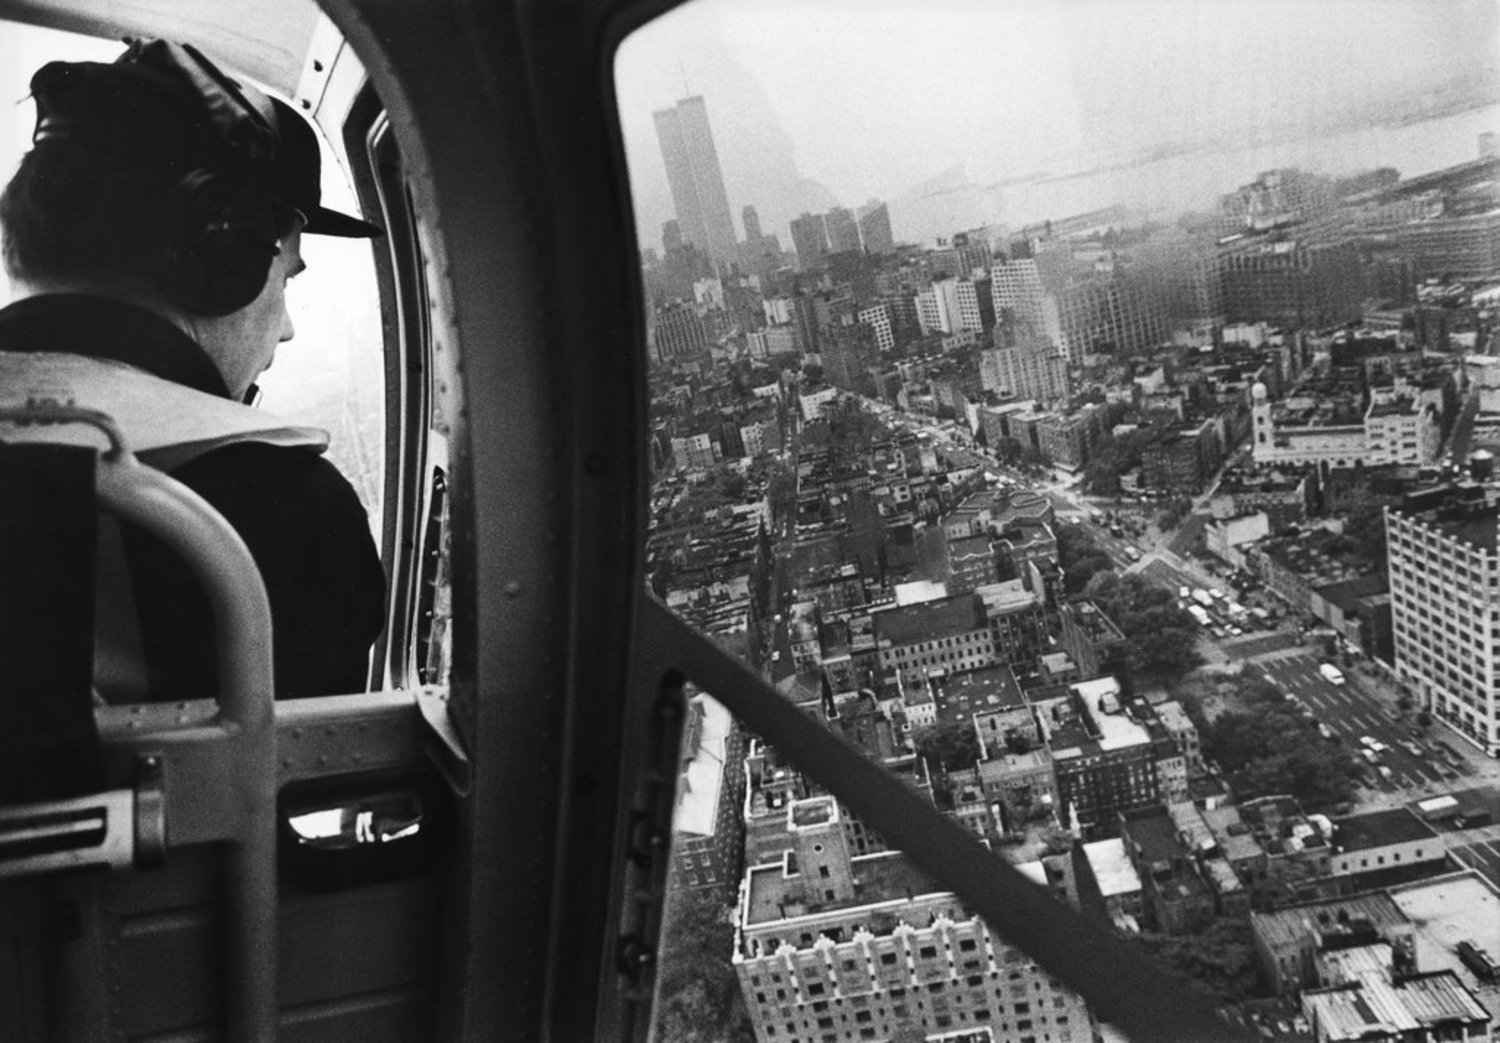 Frank Staropoli of the New York City Police Aviation Unit scoured SoHo rooftops in the growing search for Etan Patz, the boy who disappeared on his way to a bus stop on May 25, 1979. Nearly 36 years to the day of the disappearance, a judge declared a mistrial in the case after jurors — who had deliberated for three weeks — could not reach a verdict.